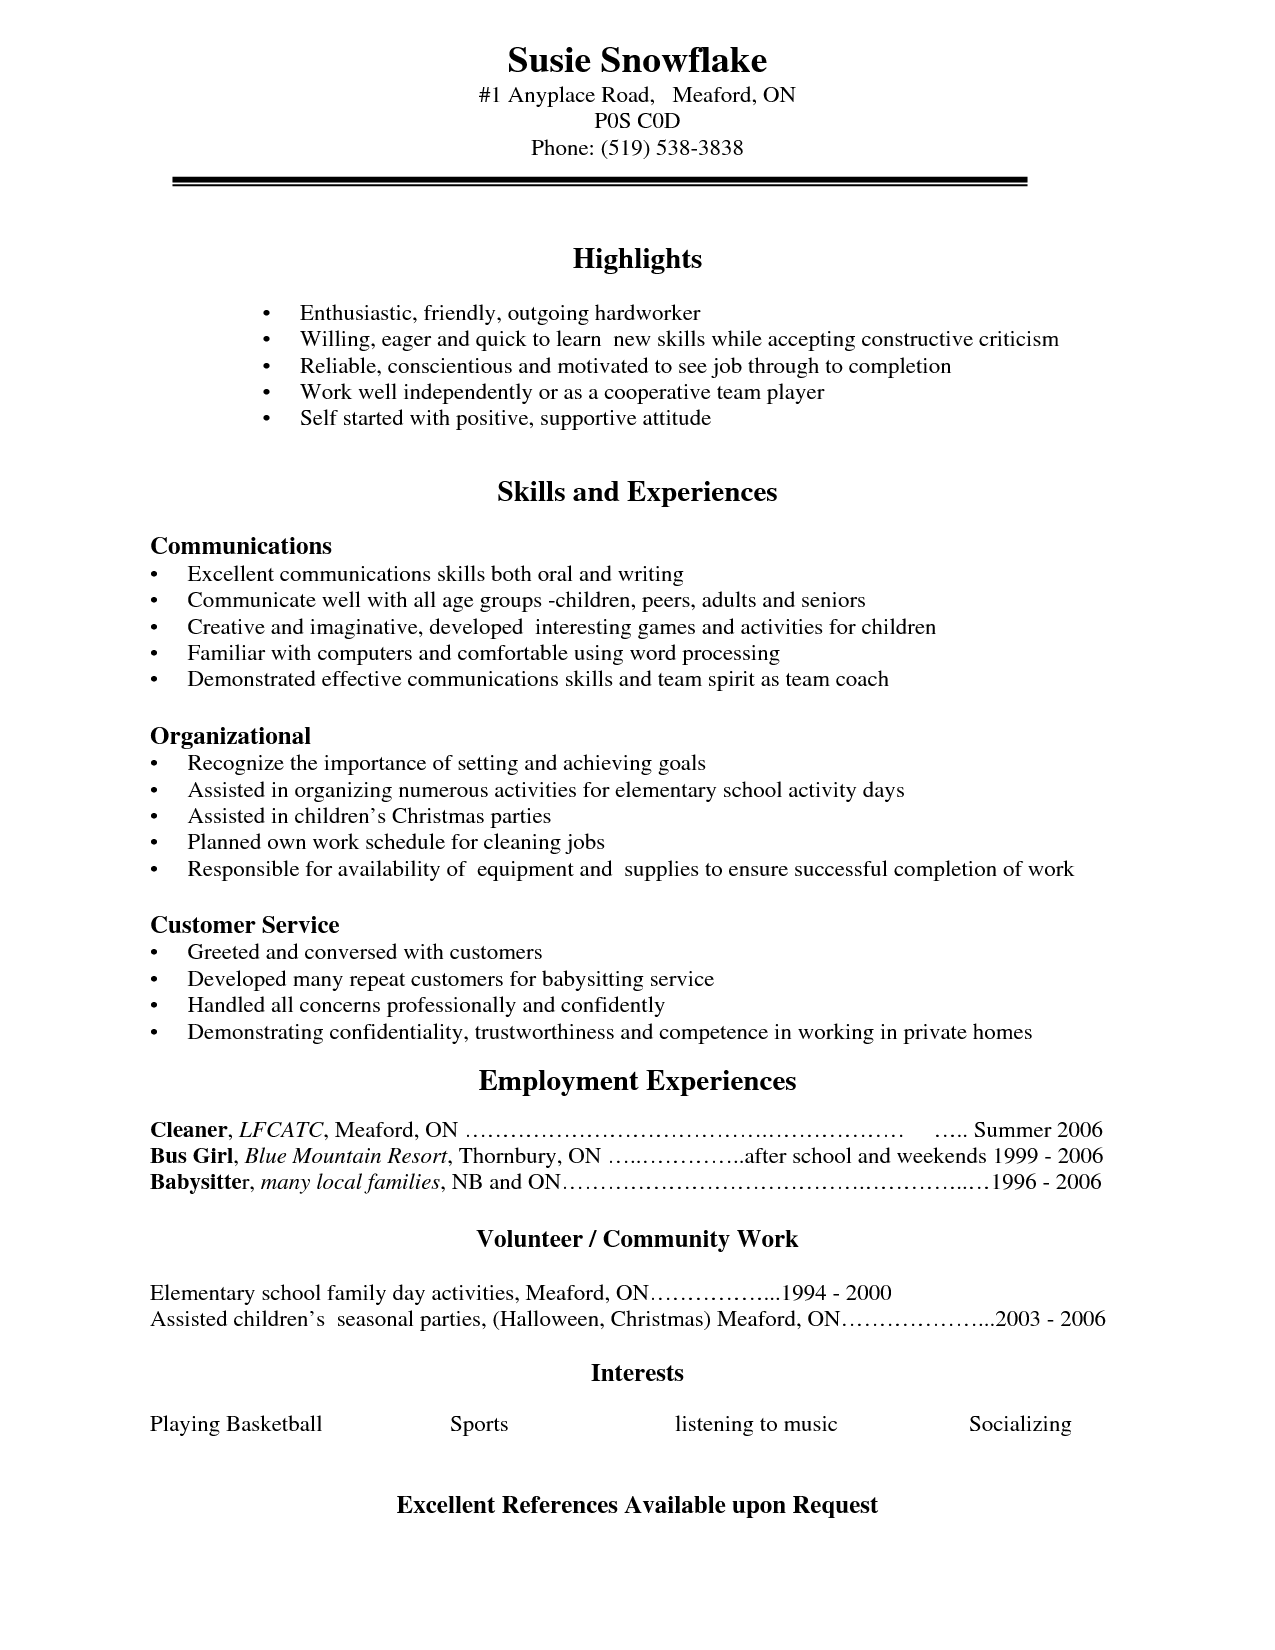 Resume For A Highschool Student Resume Building Volunteer Workvolunteer Resume Business Letter